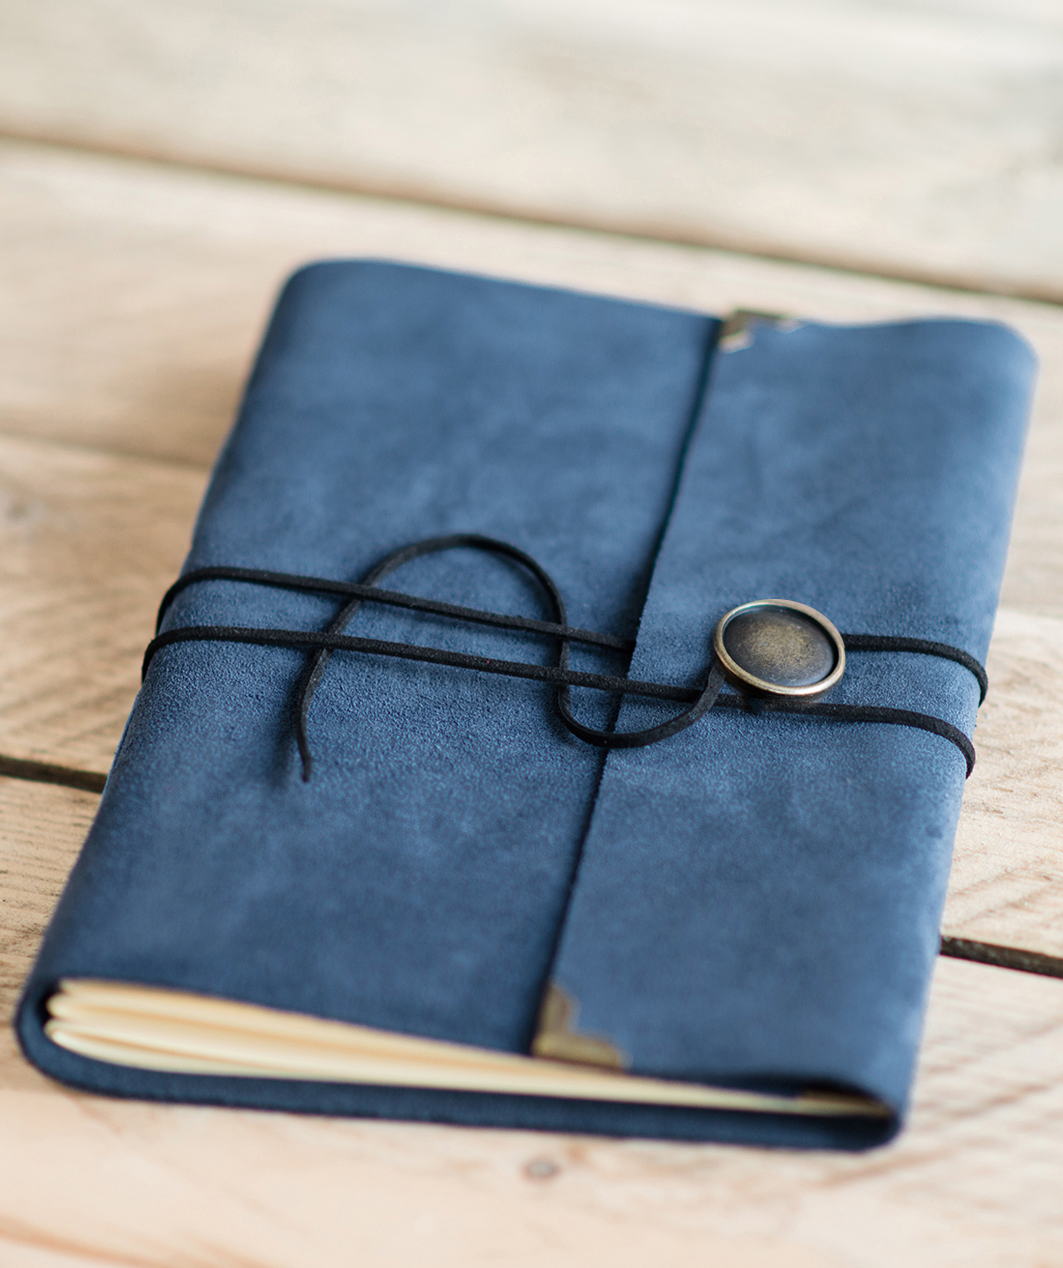 lujo-Azul-libro-de-firmas-para-boda